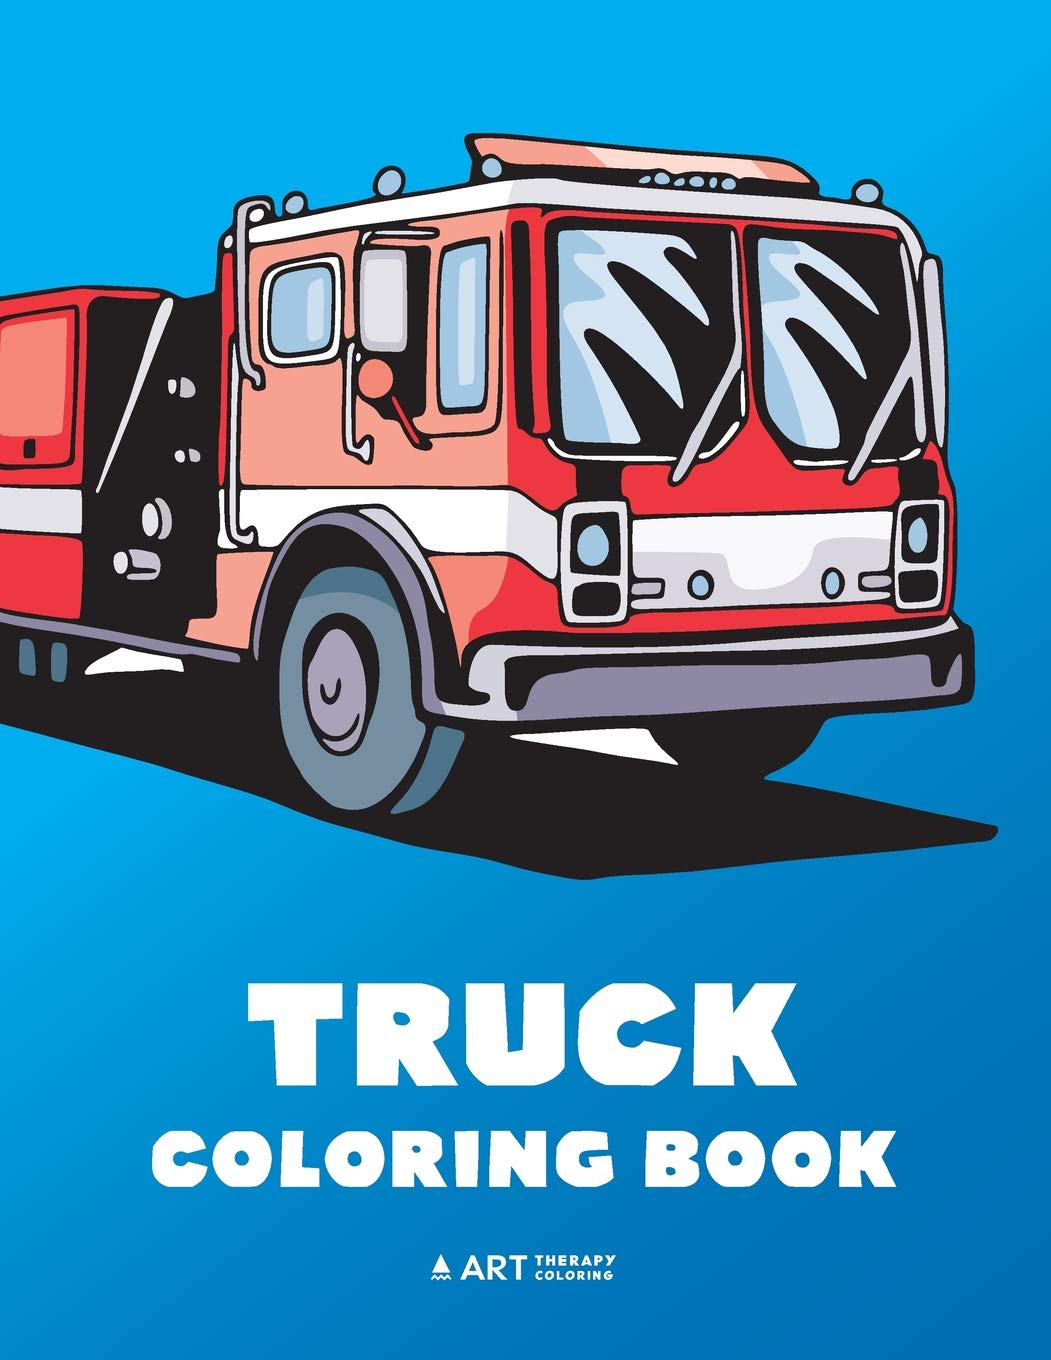 - Truck Coloring Book: 100 Coloring Pages With Firetrucks, Monster